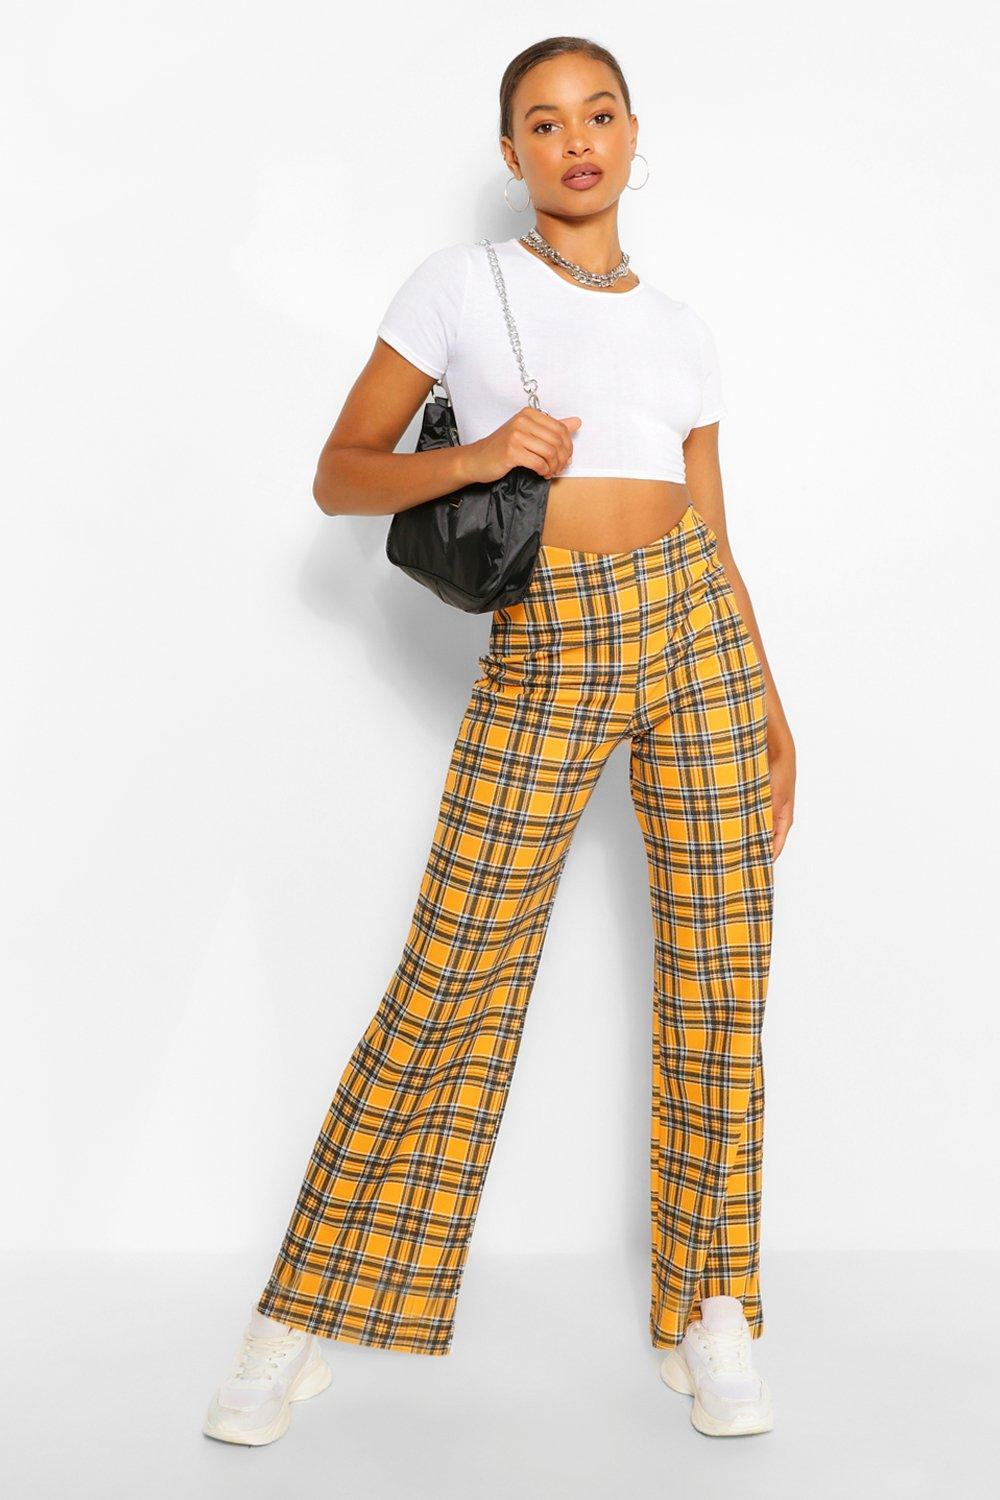 80s Jeans, Pants, Leggings Womens Flanneled Wide Leg Pants - Yellow - 12 $13.20 AT vintagedancer.com